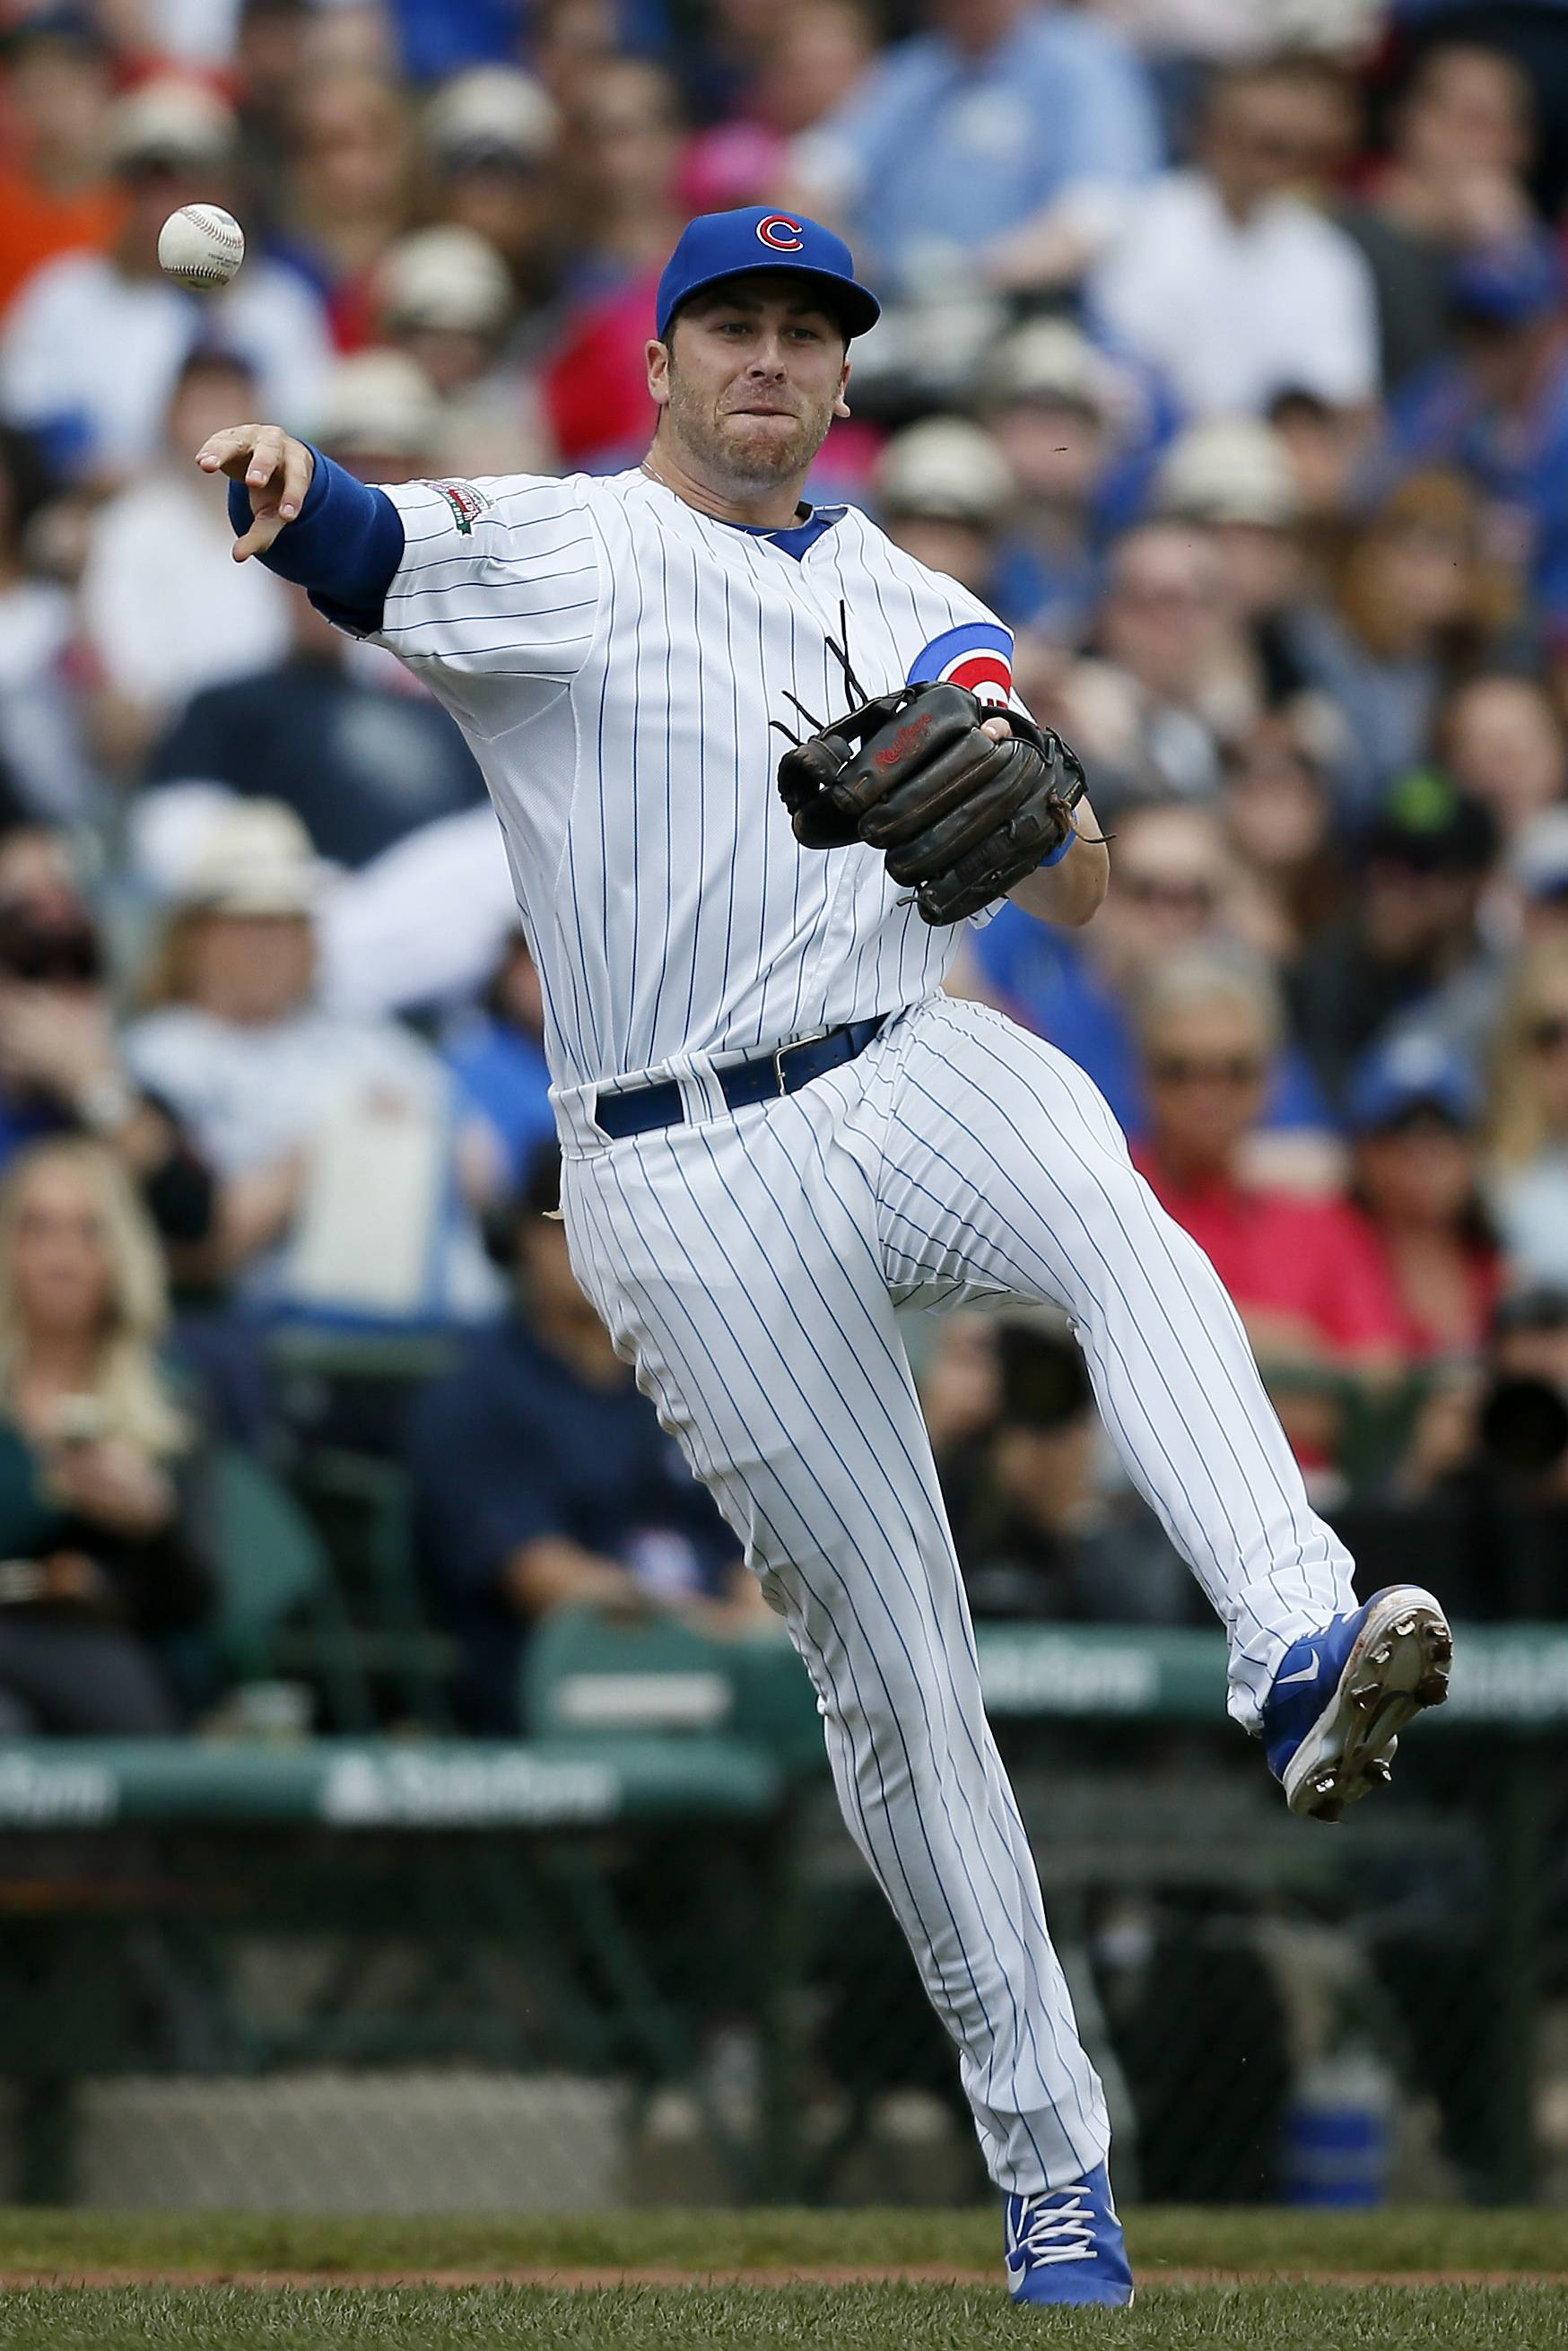 Cubs third baseman Mike Olt throws to first for an out against the St. Louis Cardinals' Allen Craig during the fifth inning of a baseball game on Saturday, May 3, 2014, in Chicago. (AP Photo/Andrew A. Nelles)